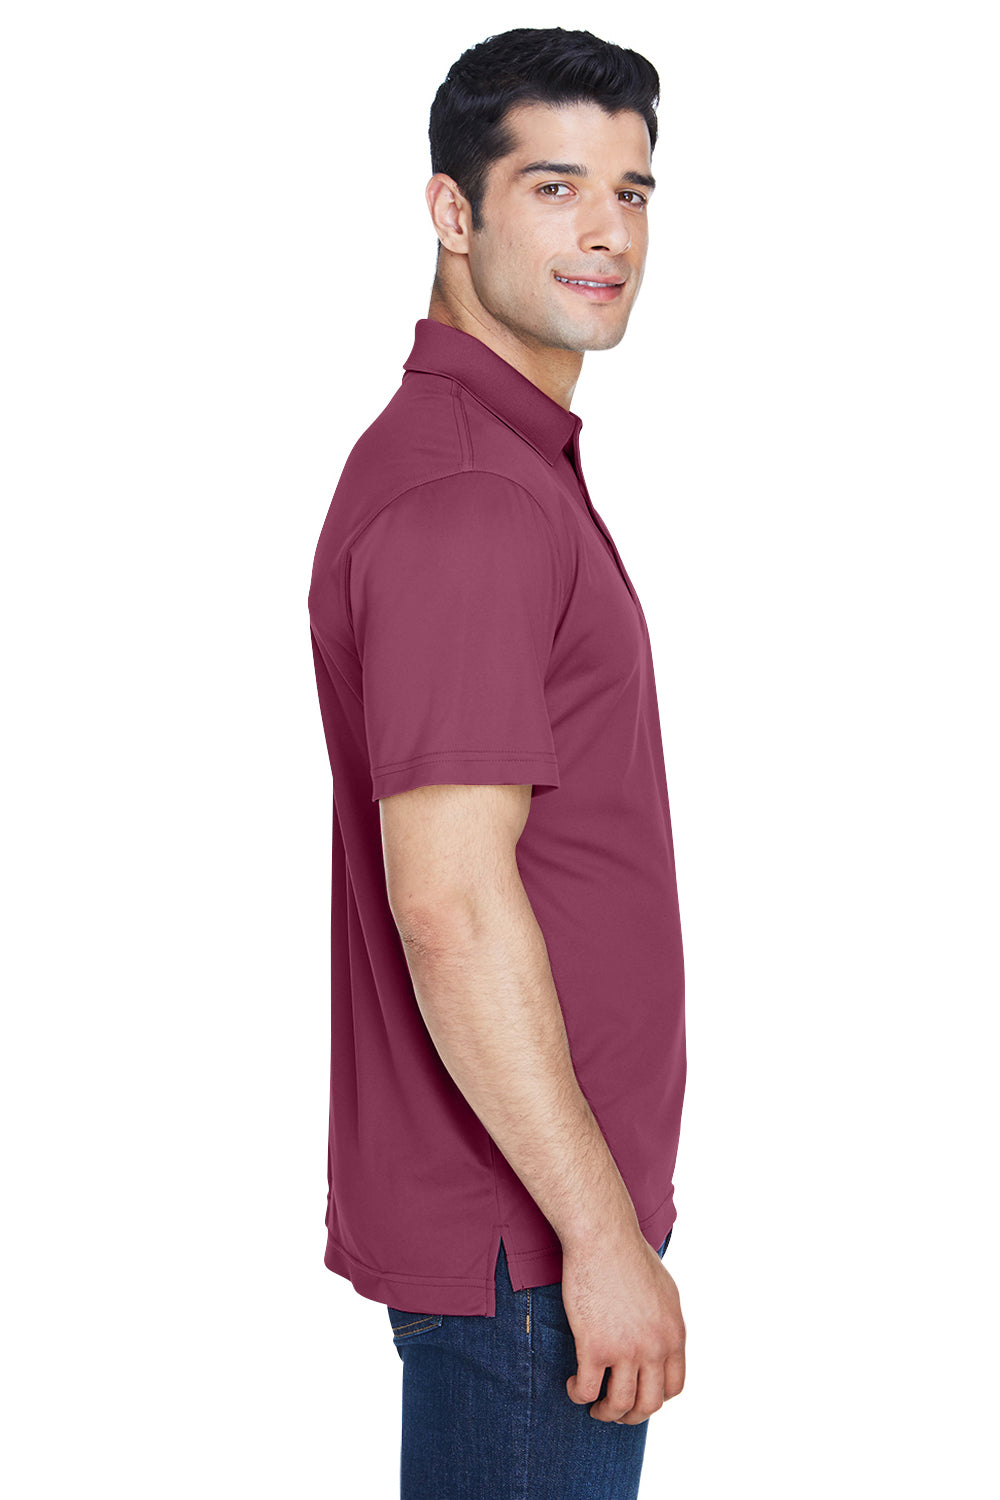 Harriton M315 Mens Polytech Moisture Wicking Short Sleeve Polo Shirt Maroon Side